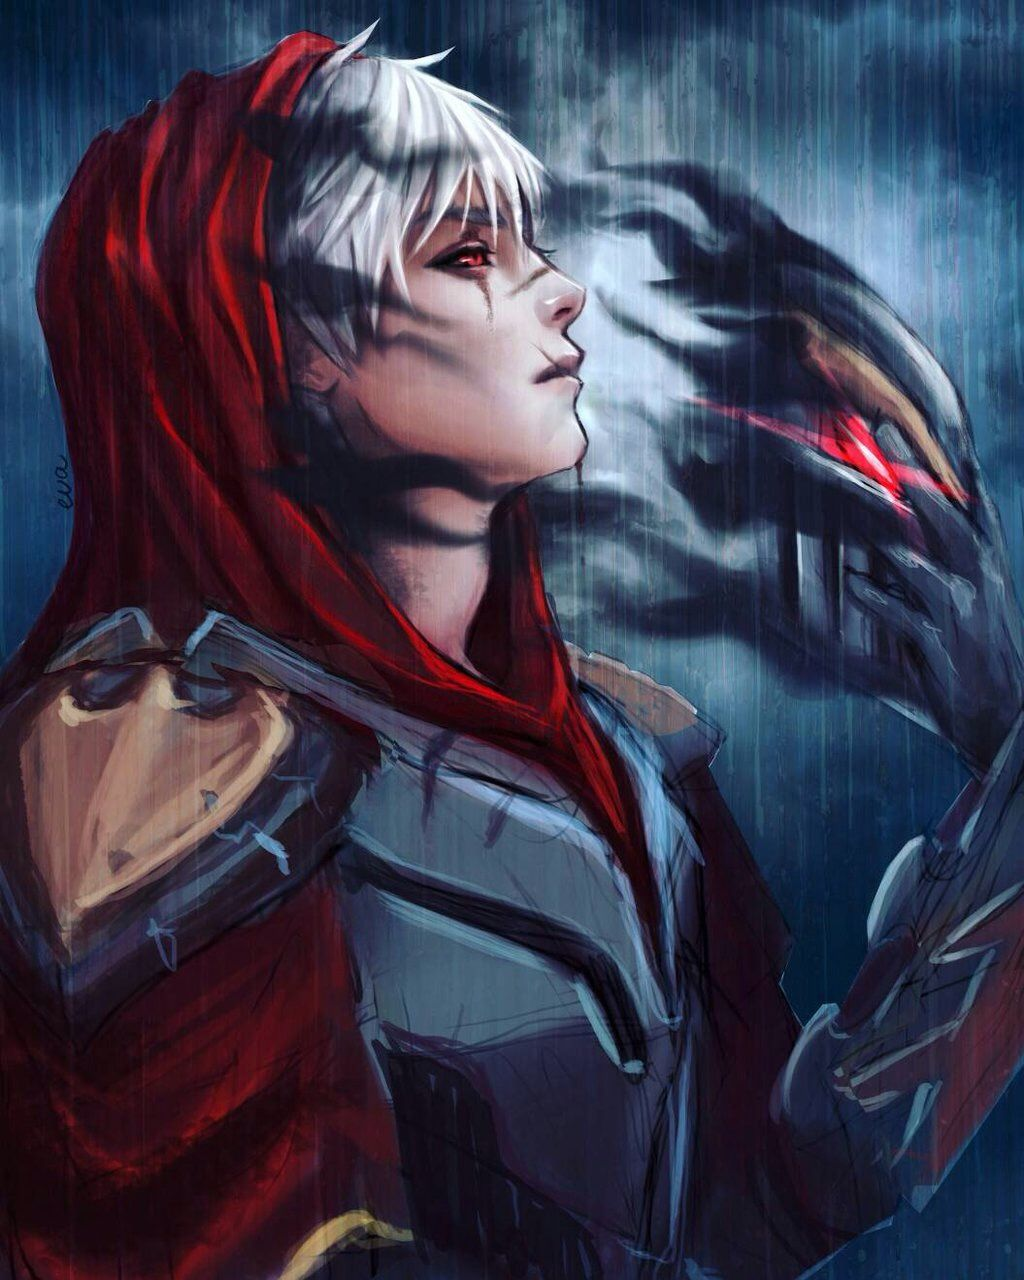 Pin By Victor Ri On Anime Boy In 2019 League Of Legends League Of